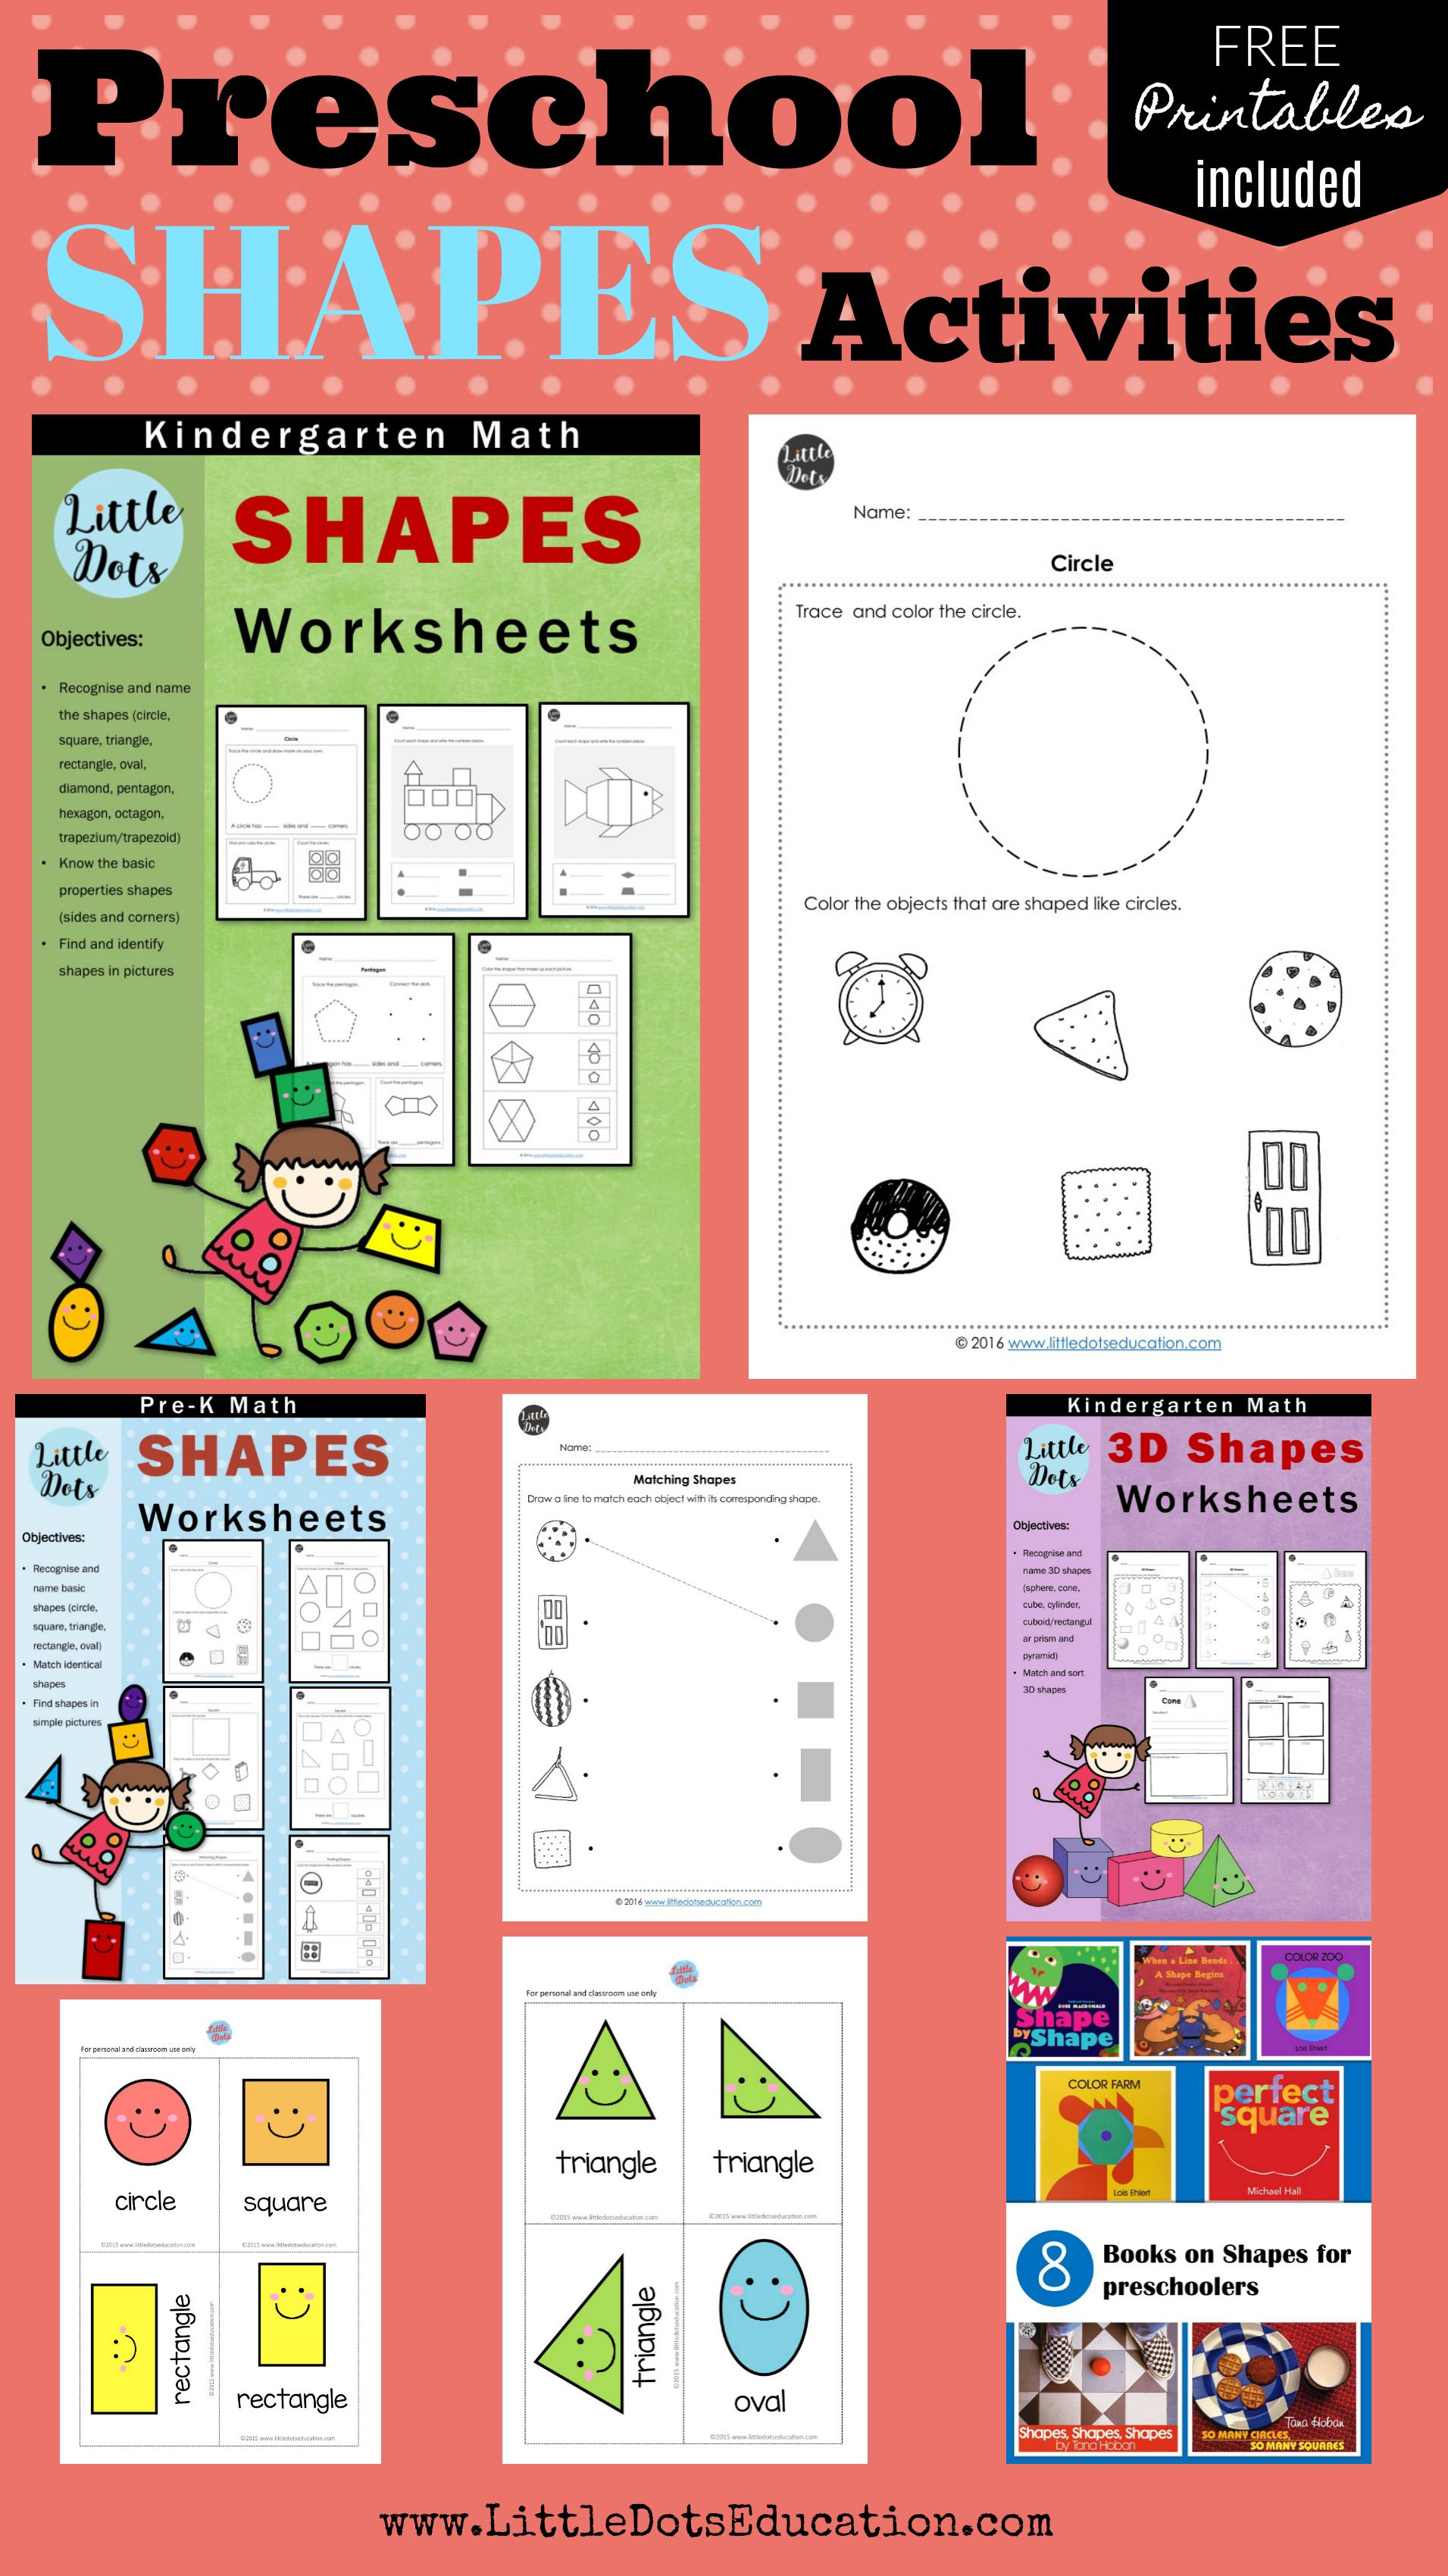 Preschool Shapes Activities Worksheets And Printables